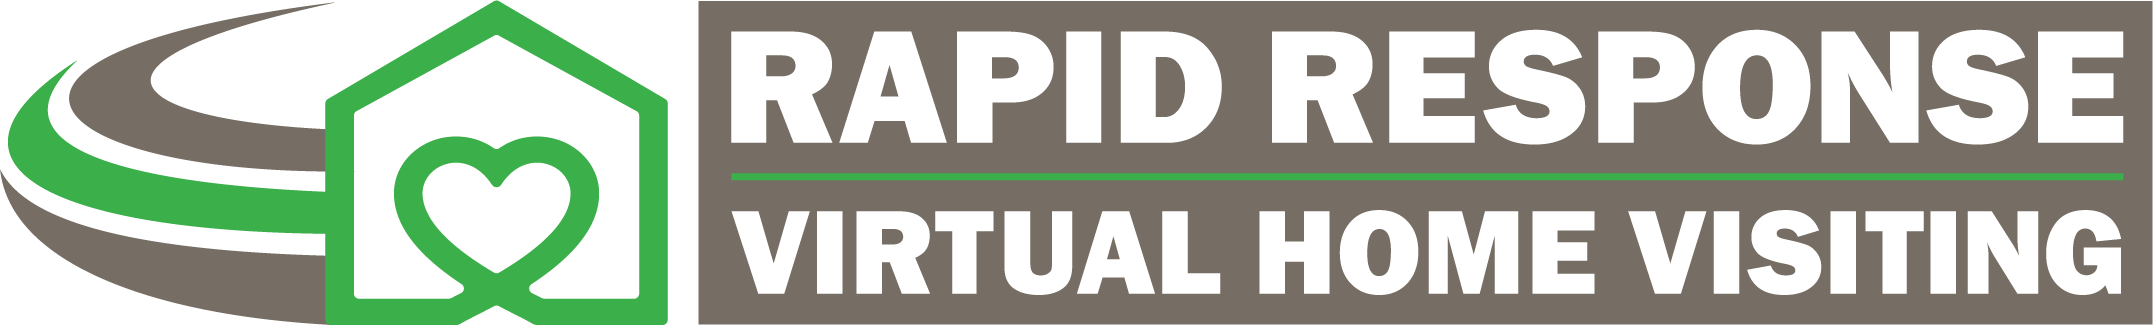 Rapid Response-Virtual Home Visiting